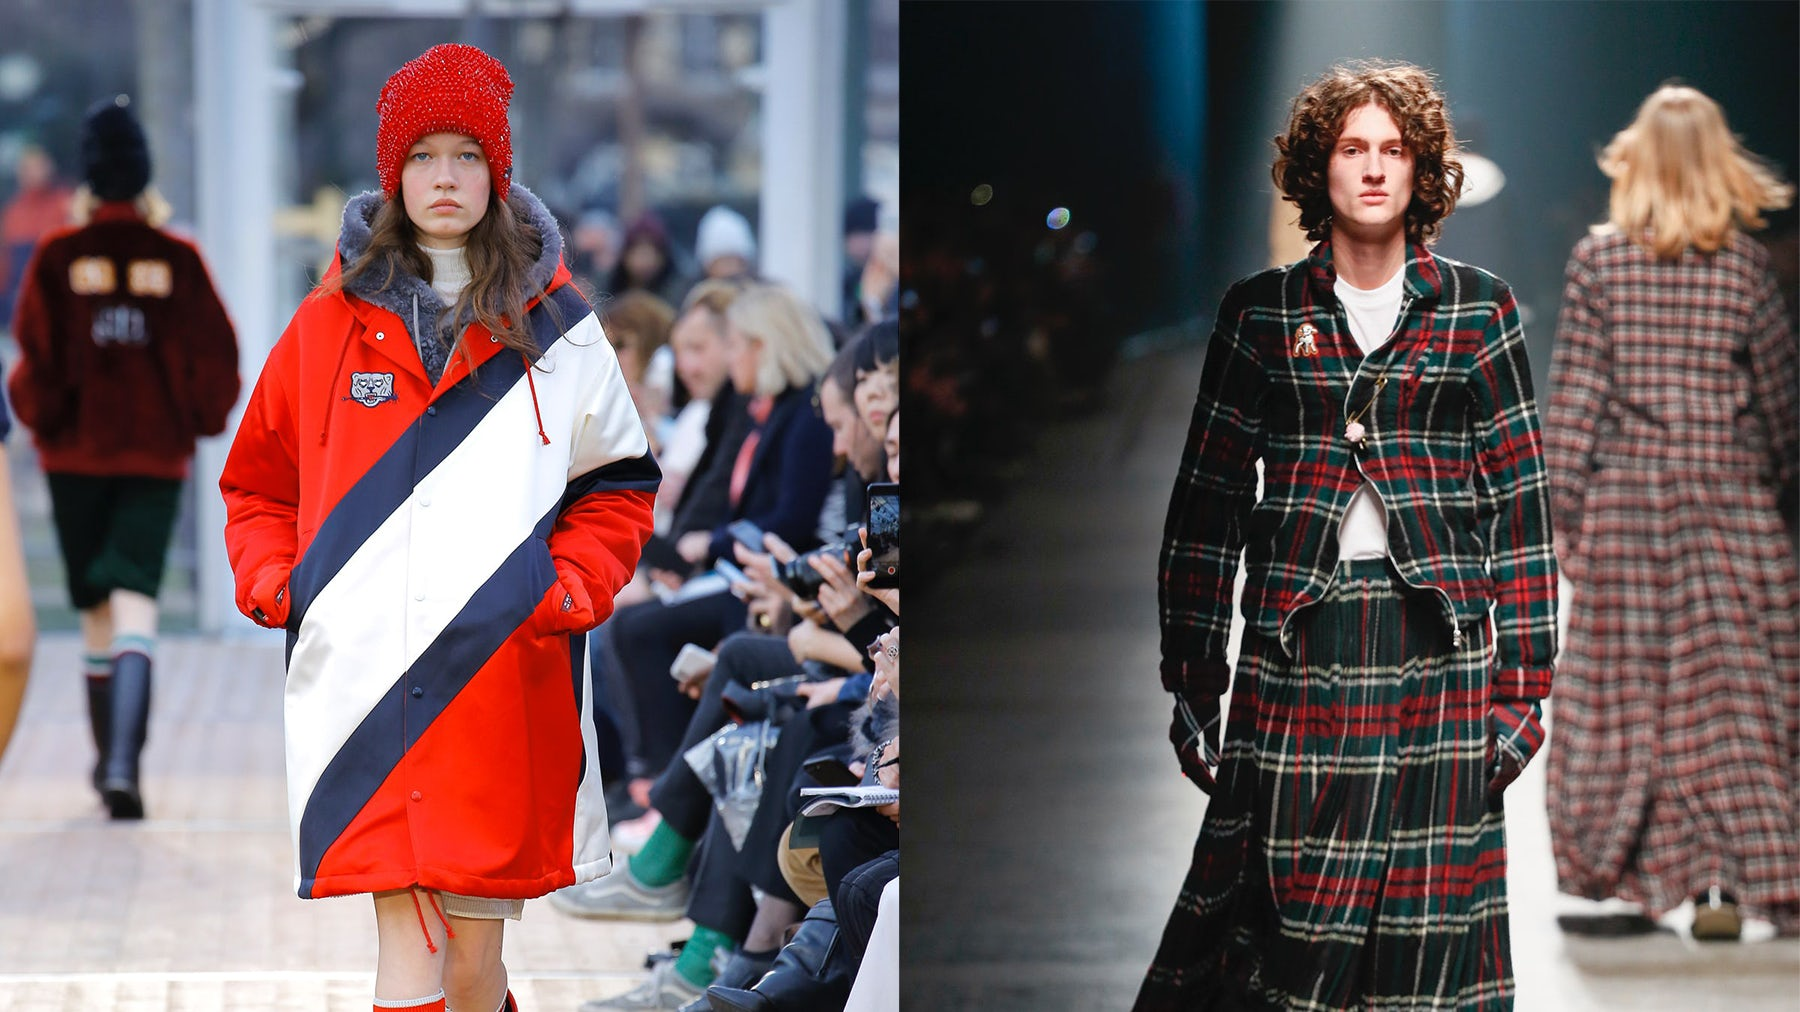 Left: Undercover women's AW18; right: men's AW18 | Source: Indigital